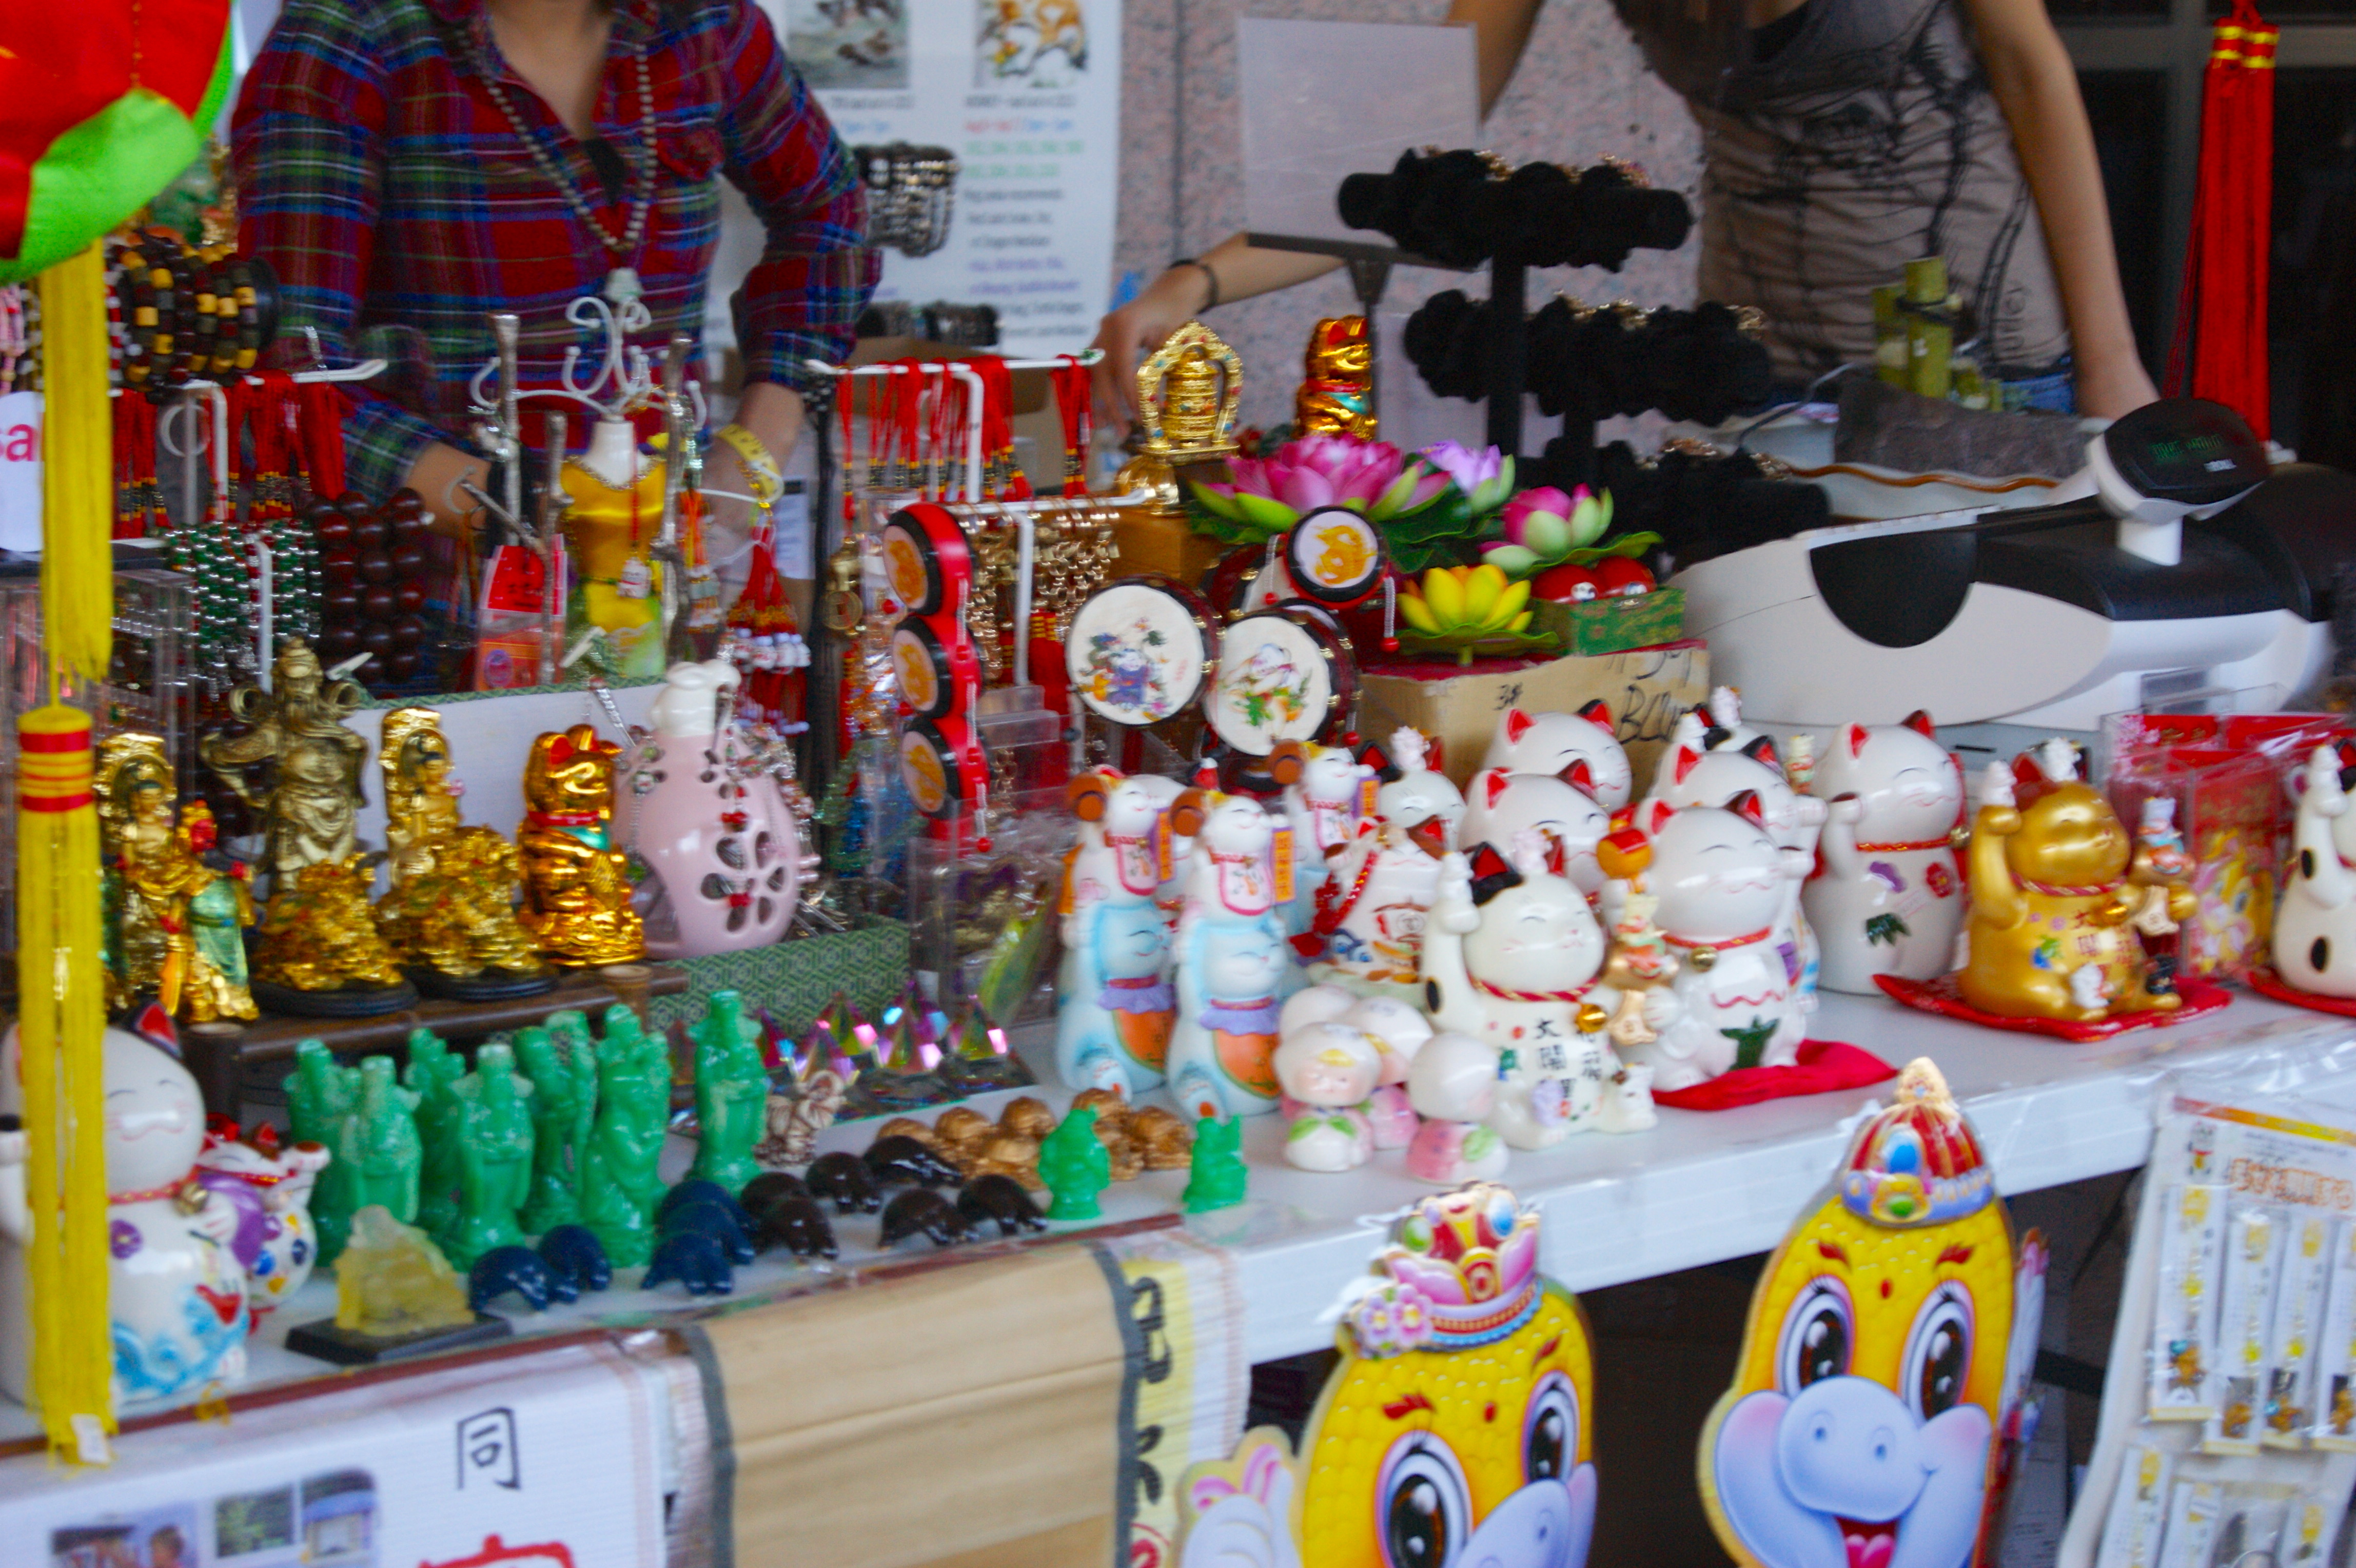 Crafts for sale at the festival